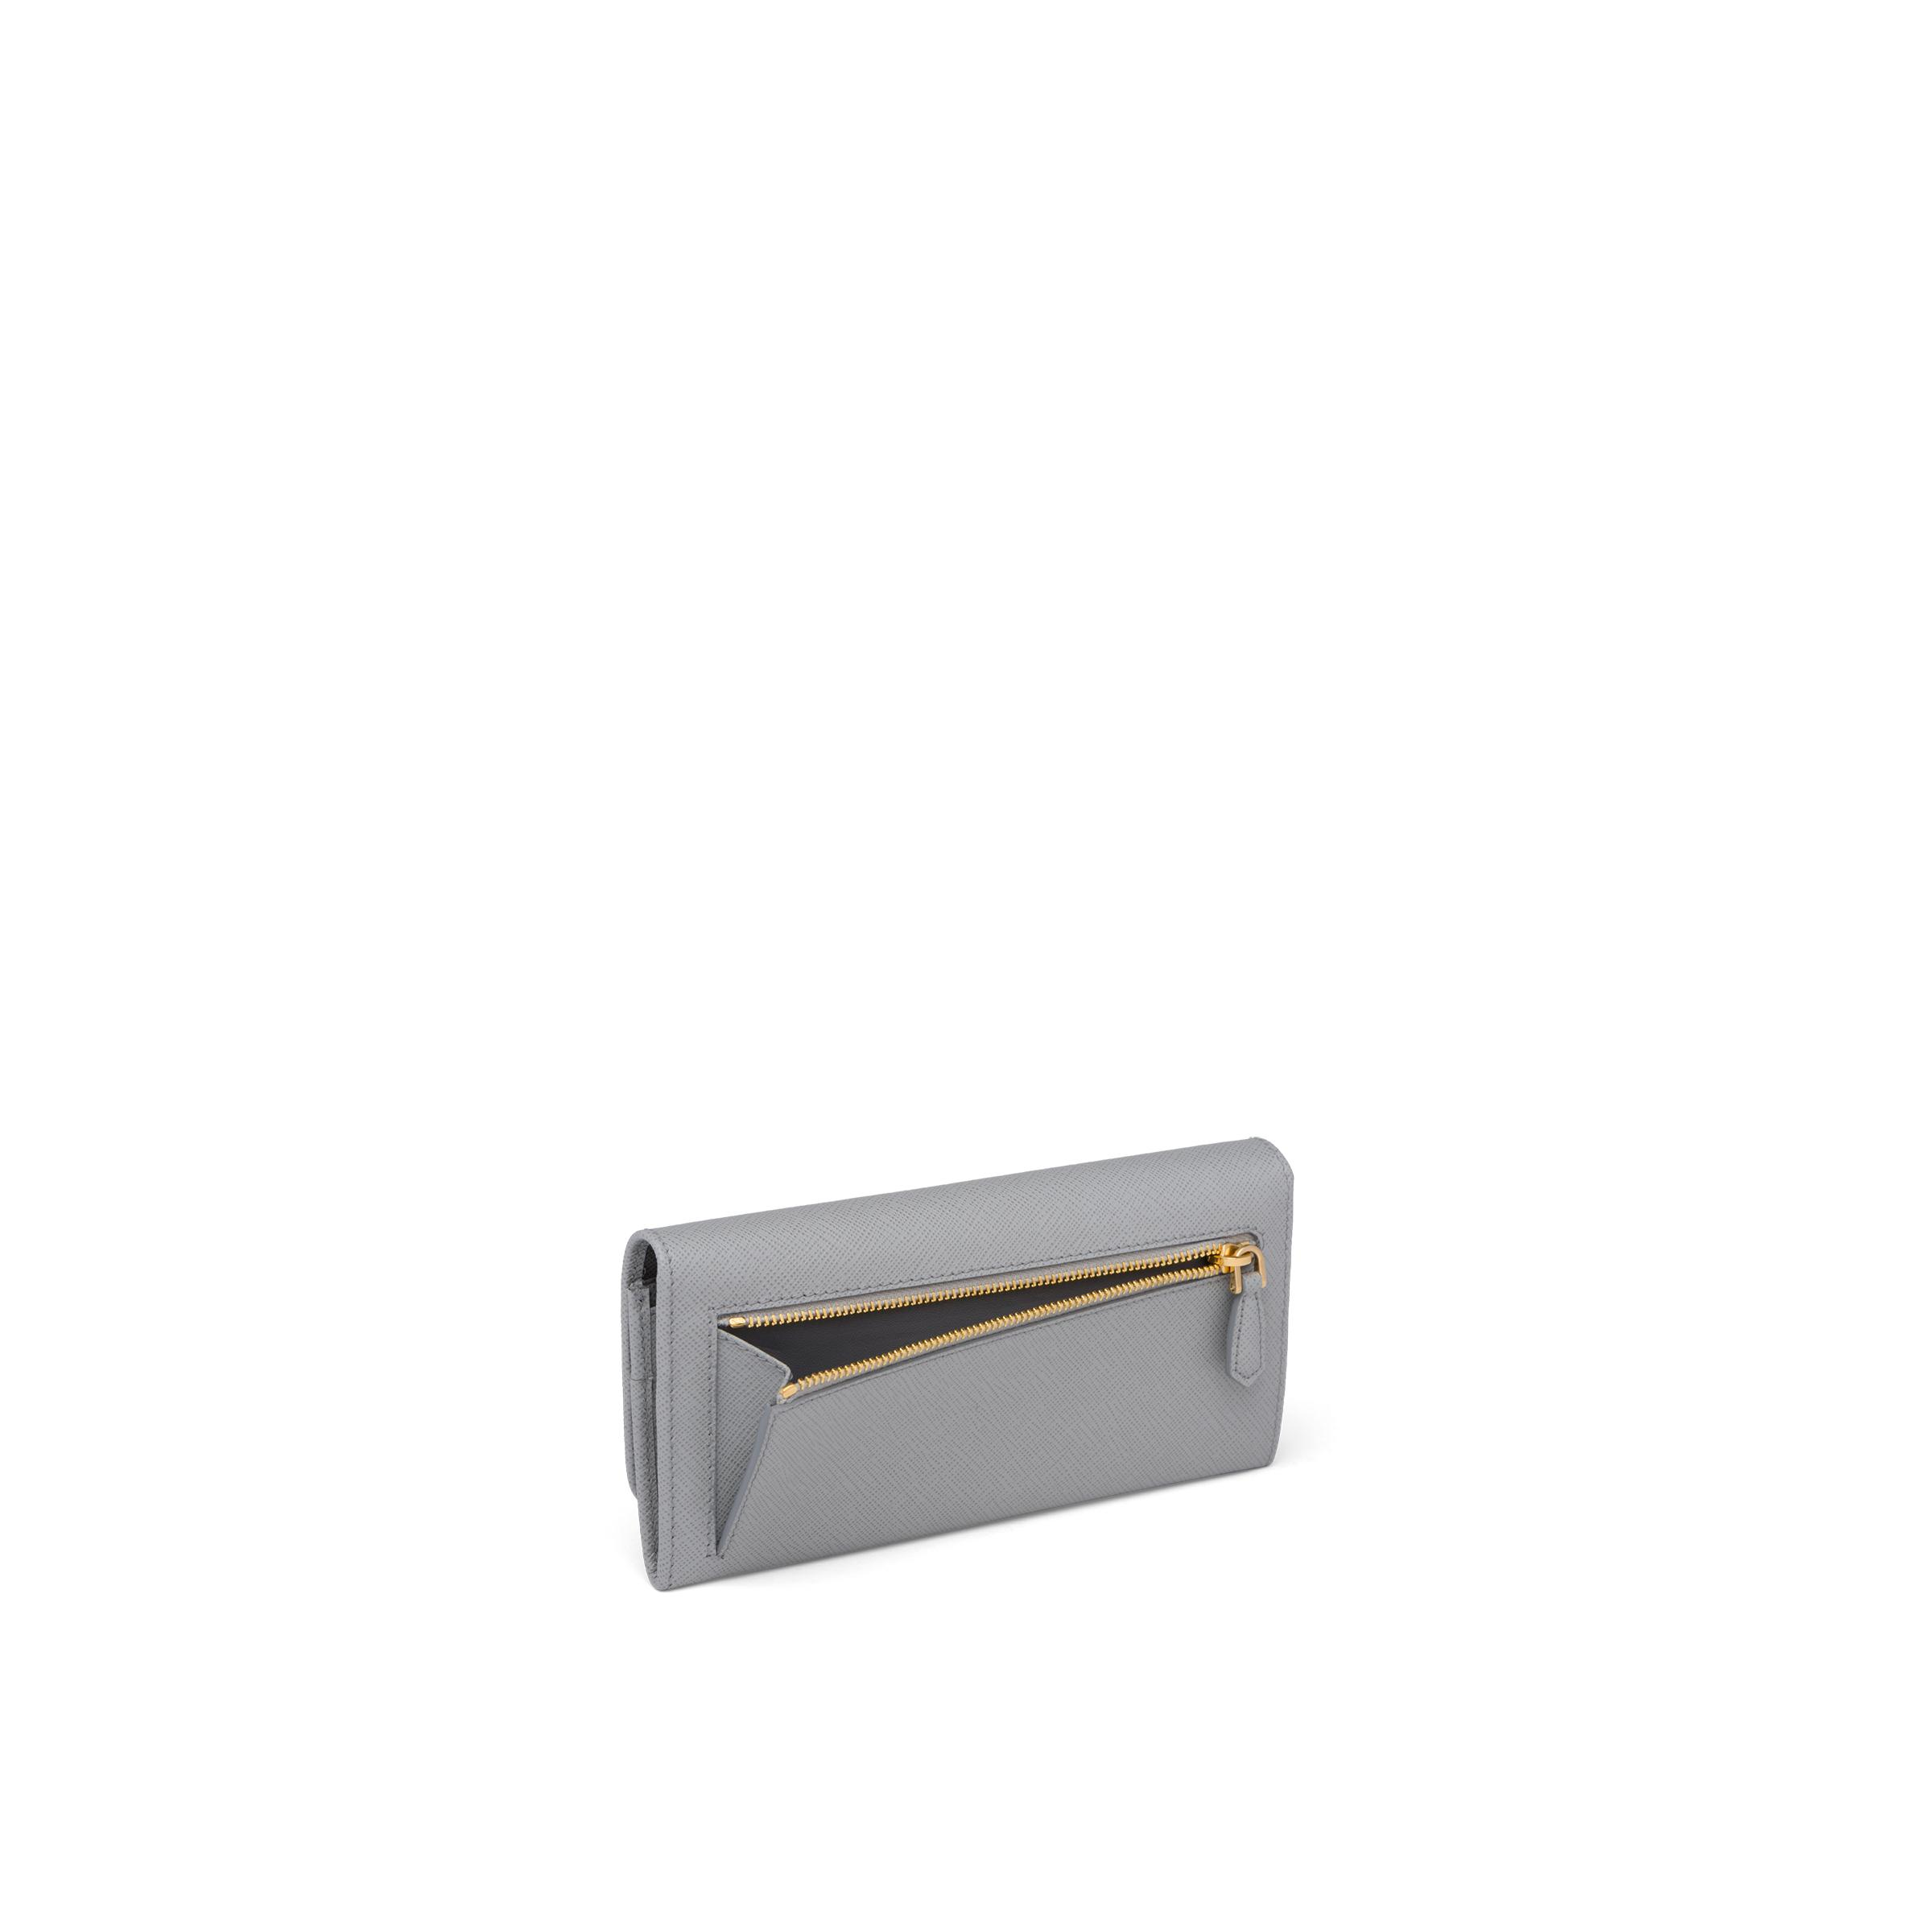 Large Saffiano Leather Wallet Women Cloudy Gray/marble Gray 5